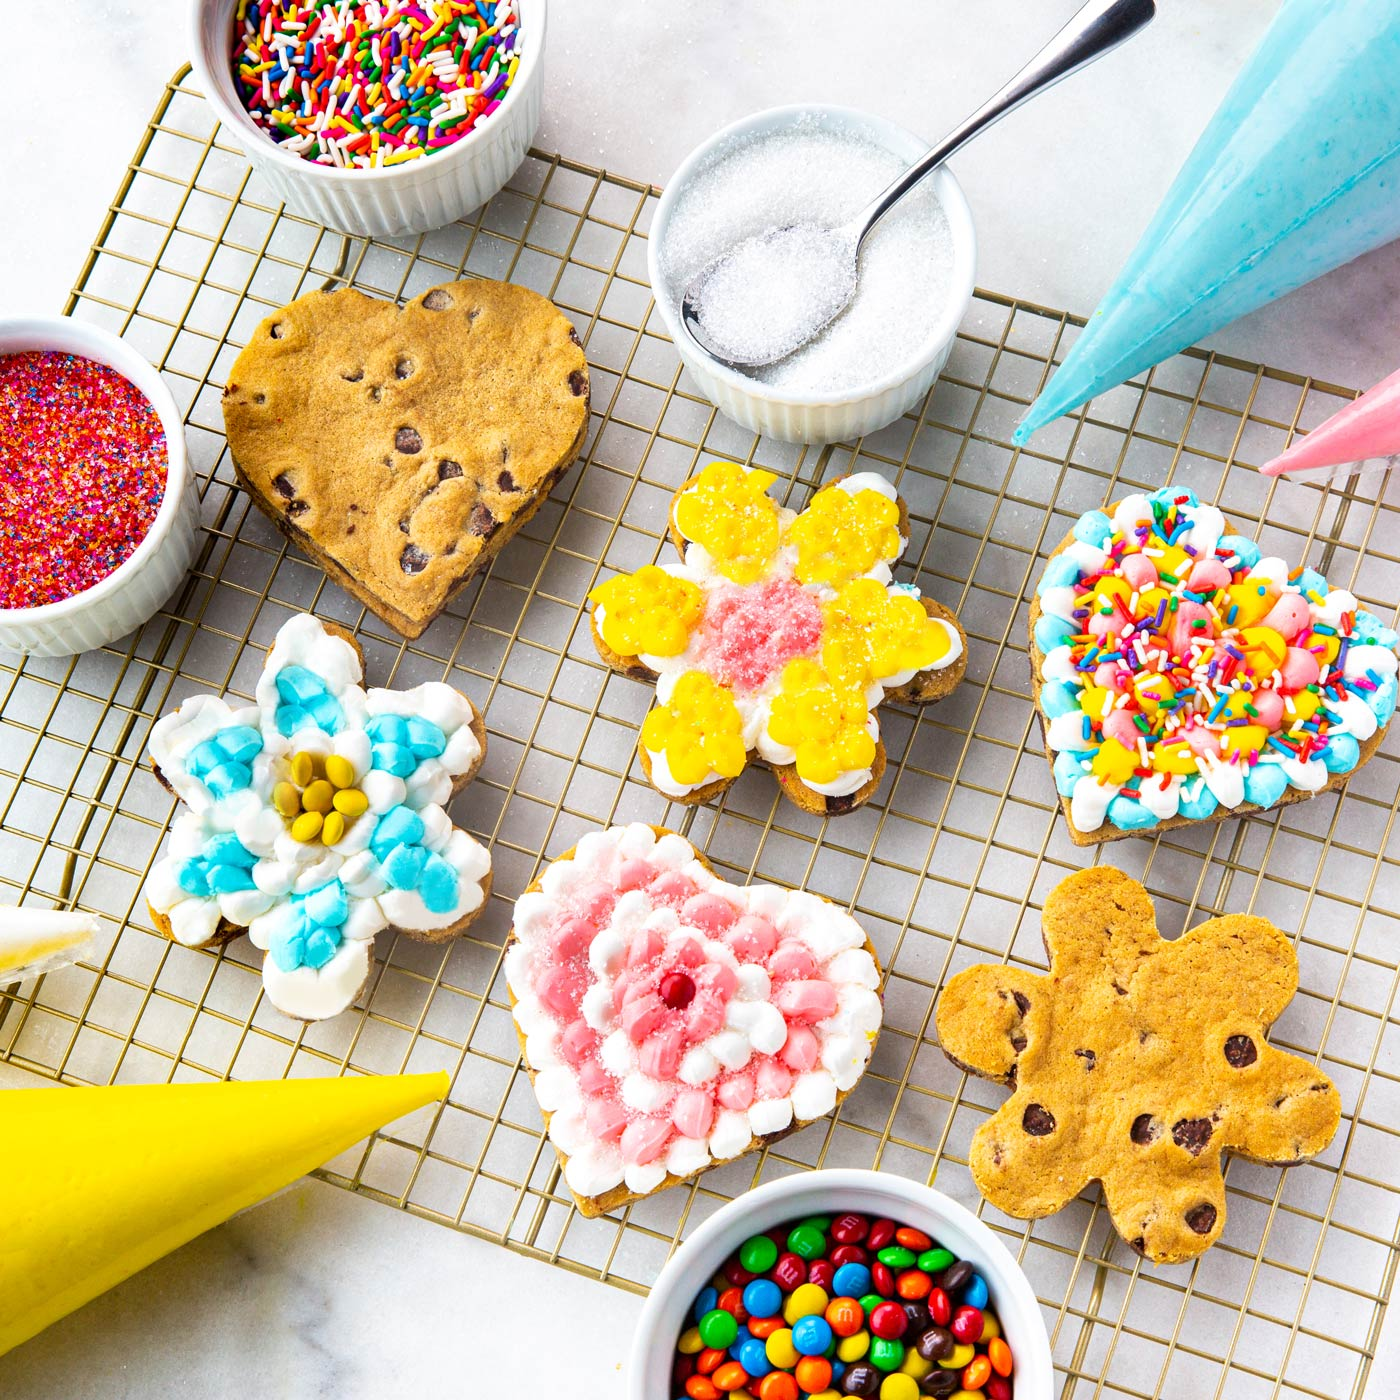 Three heart and three flower shaped cookies being decorated with icing, sprinkles, sugar, and m&ms